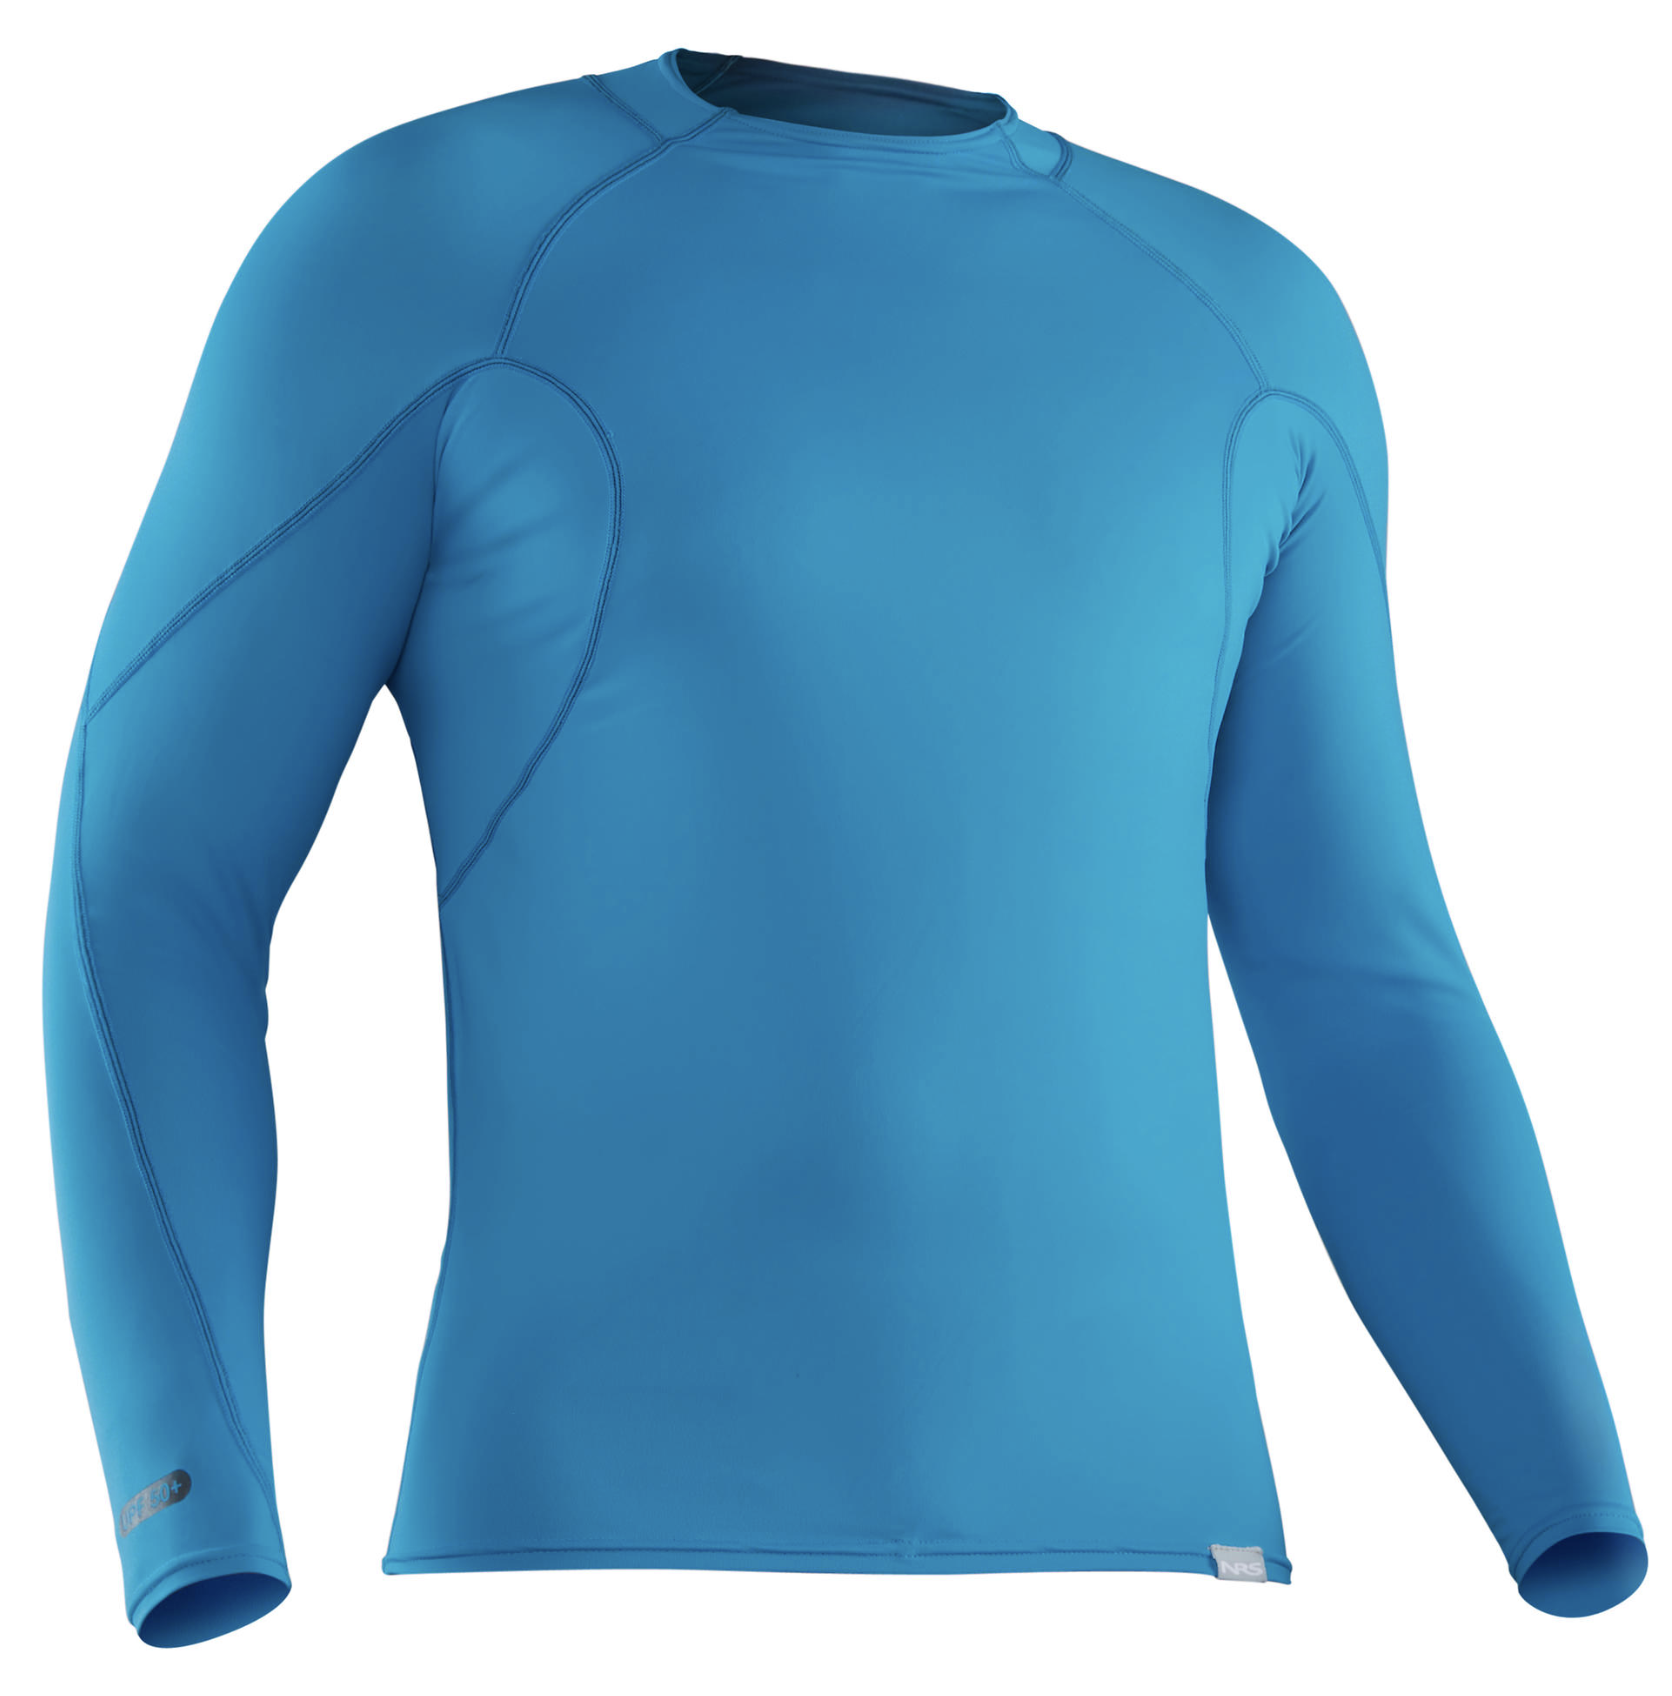 Layering: H2Core Rashguard Long-Sleeve Shirt by NRS - Image 4806